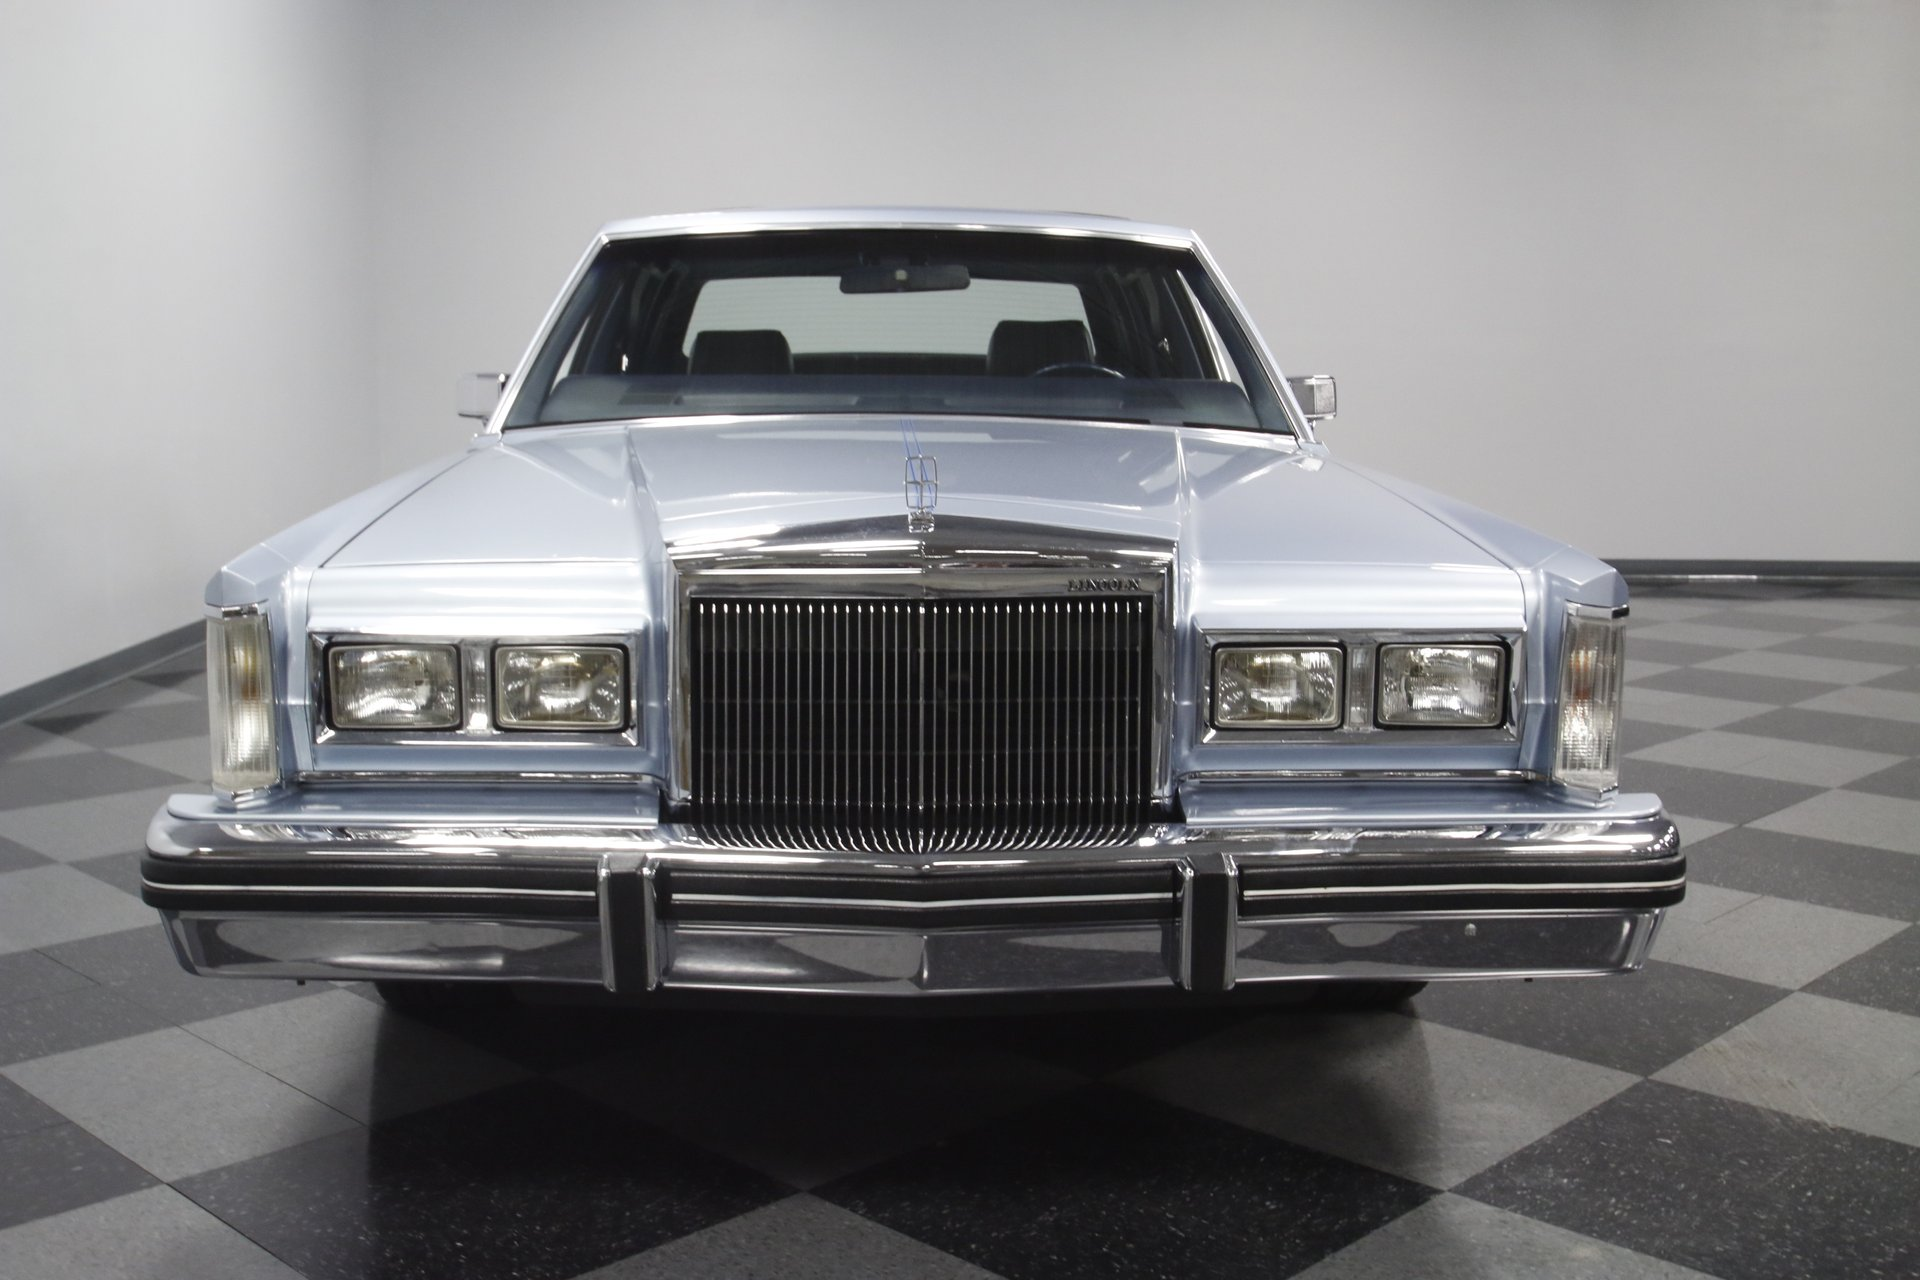 1984 Lincoln Town Car Streetside Classics The Nations Trusted 1941 View 360